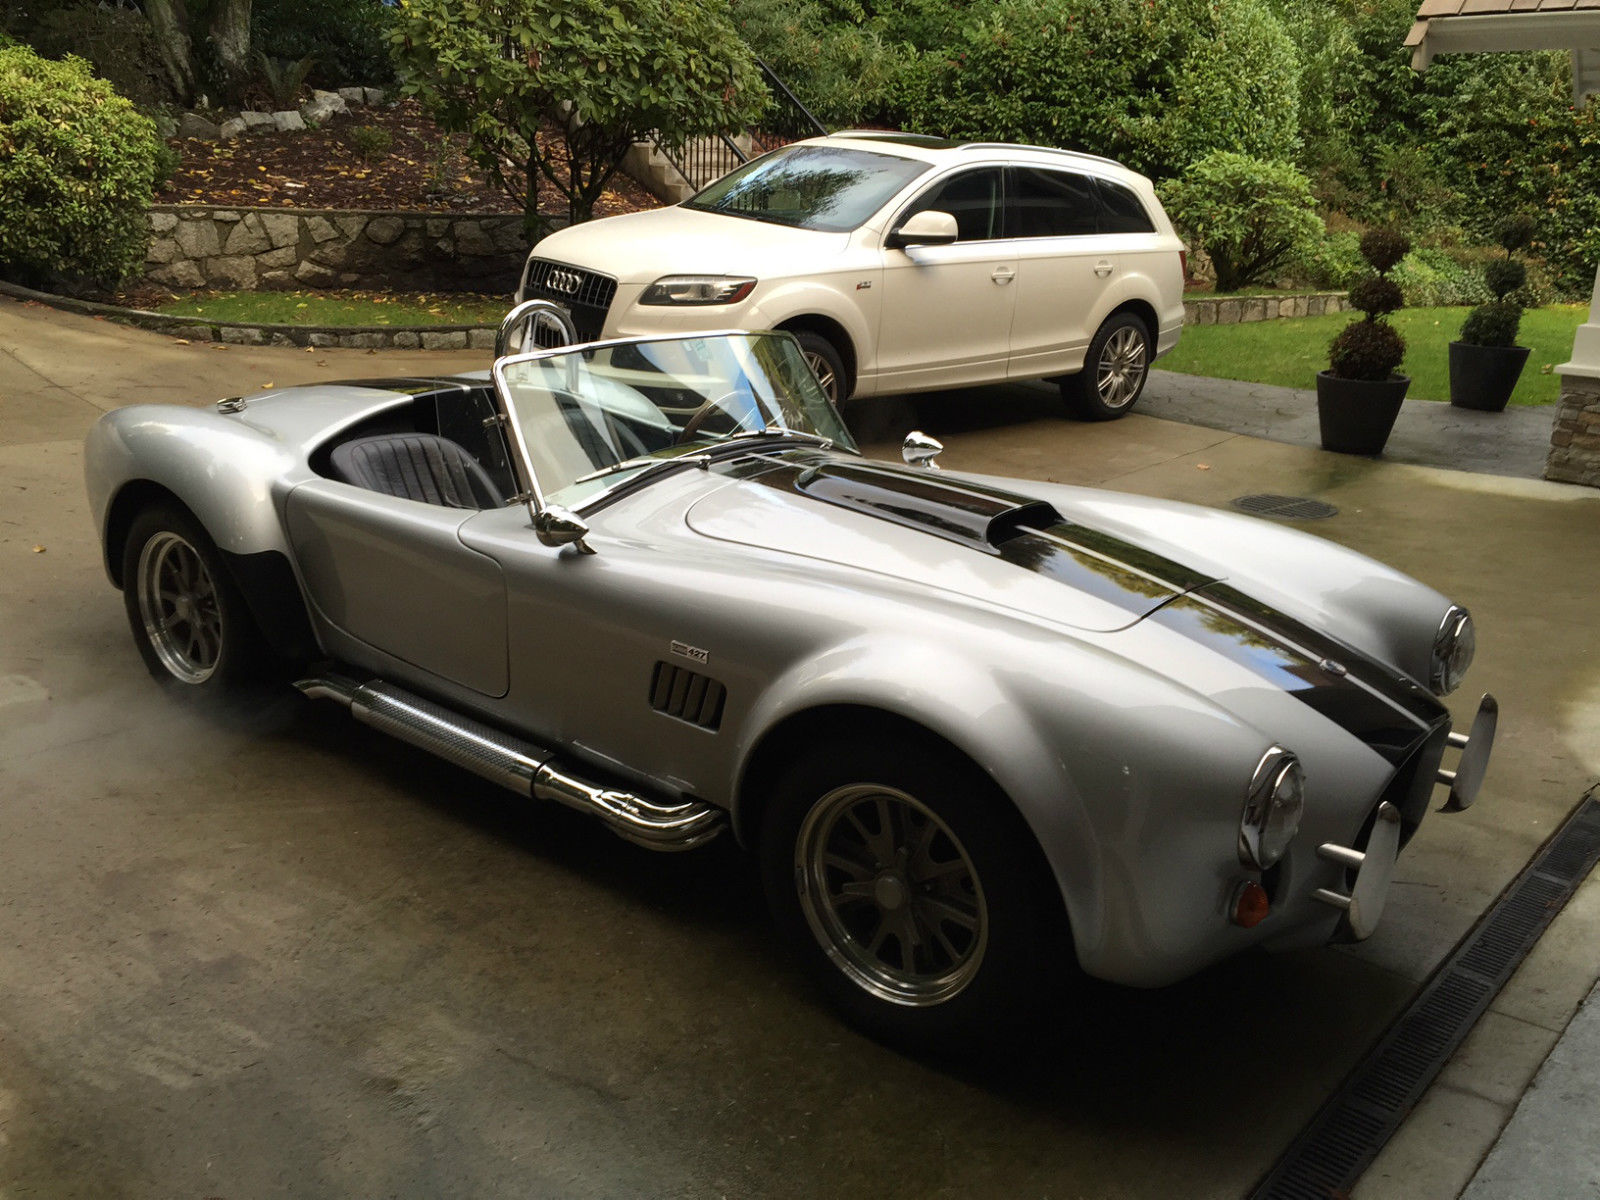 ac cobra 427 professionally built kit car by classic roadsters. Black Bedroom Furniture Sets. Home Design Ideas